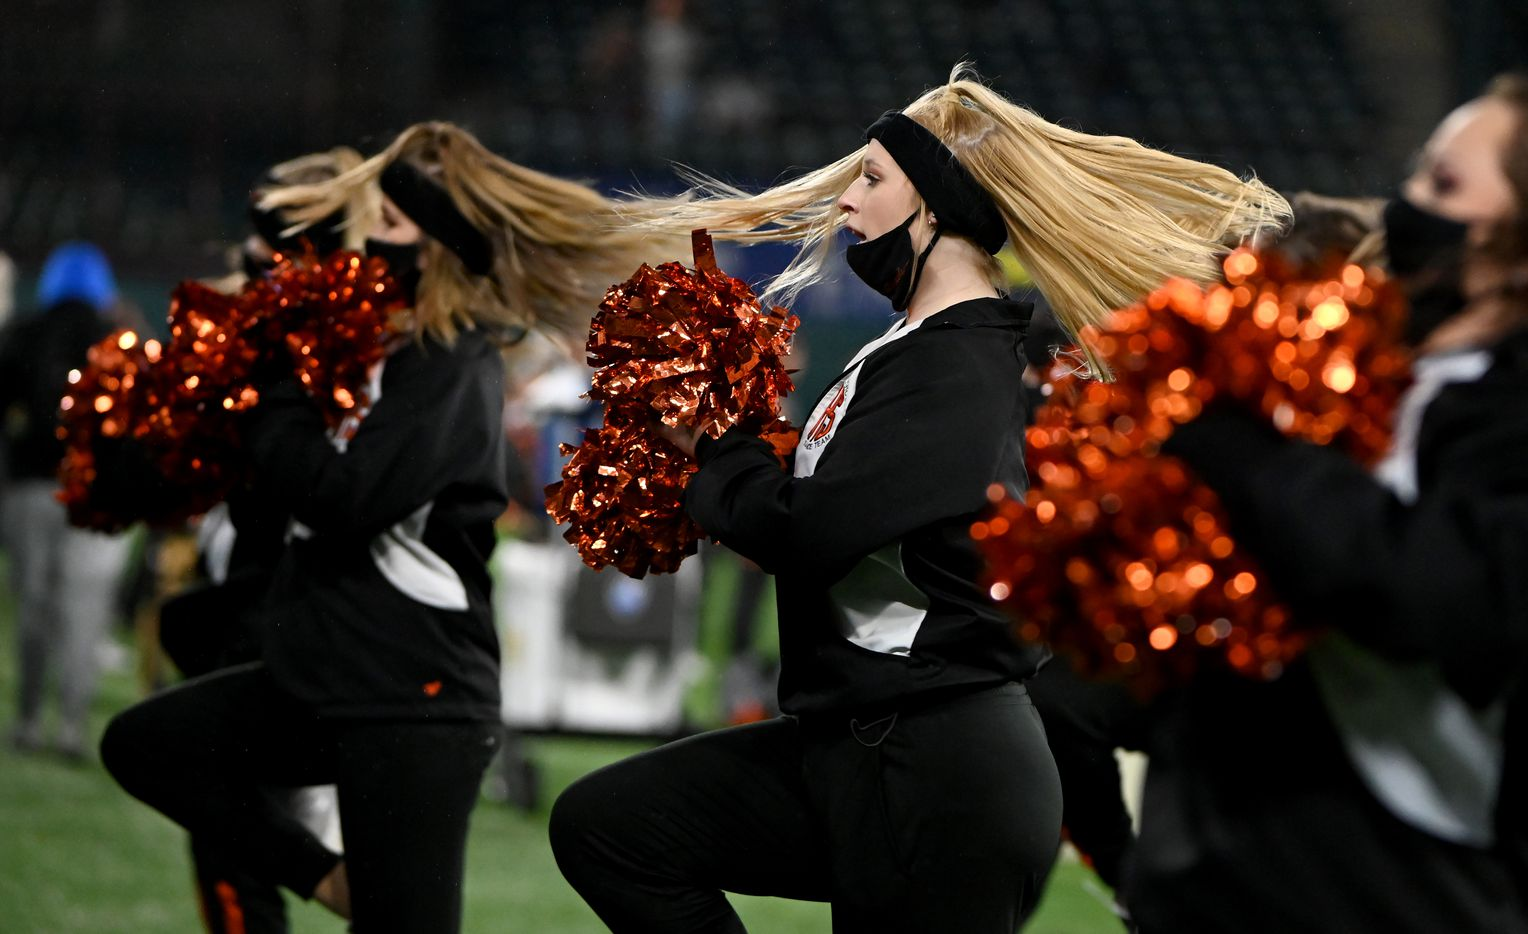 Aledo cheerleaders perform in the first quarter of the Class 5A Division II Region II final high school football game between Aledo and Lovejoy, Friday, Jan. 1, 2021, in Arlington, Texas. (Matt Strasen/Special Contributor)